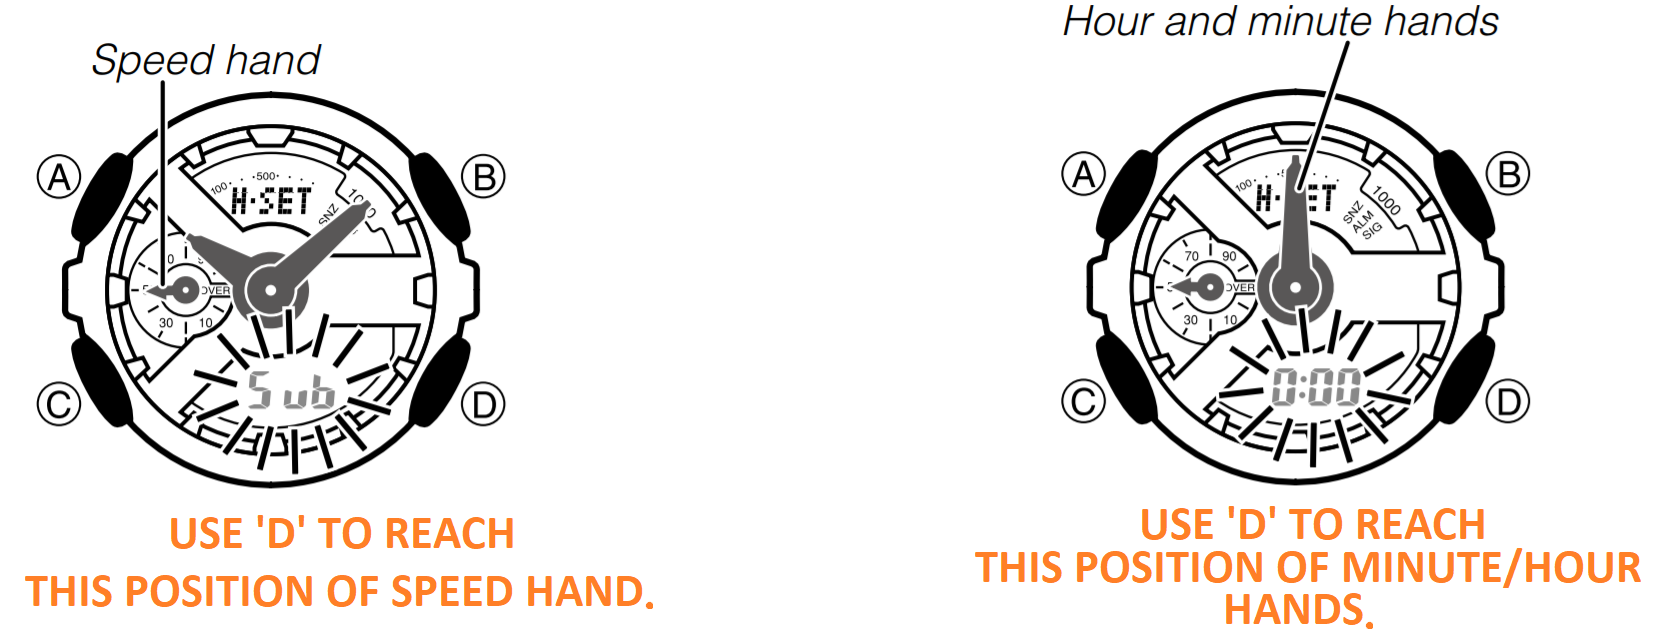 how to set time on g shock 5146 watch